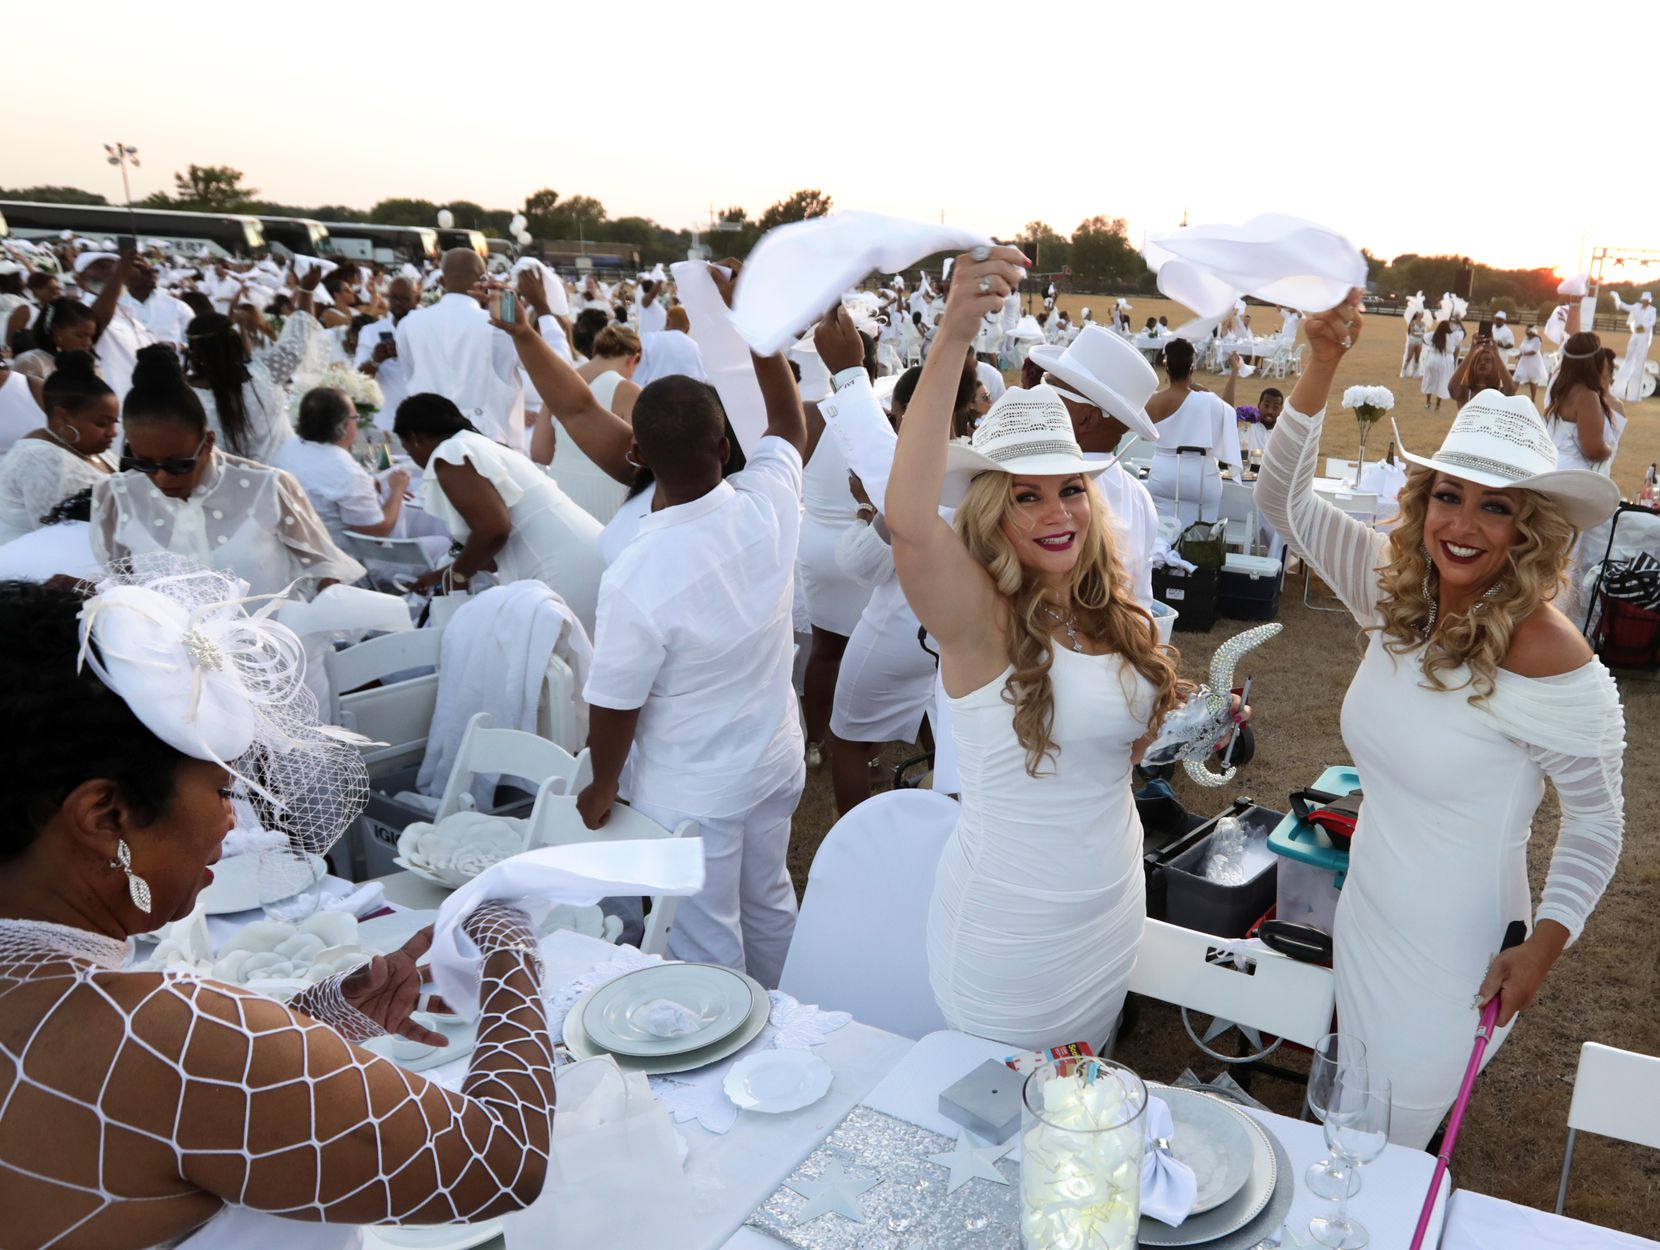 Guests wave their napkins during the Diner en Blanc event at Southfork Ranch in Parker, TX, on Oct. 5, 2019. (Jason Janik/Special Contributor)